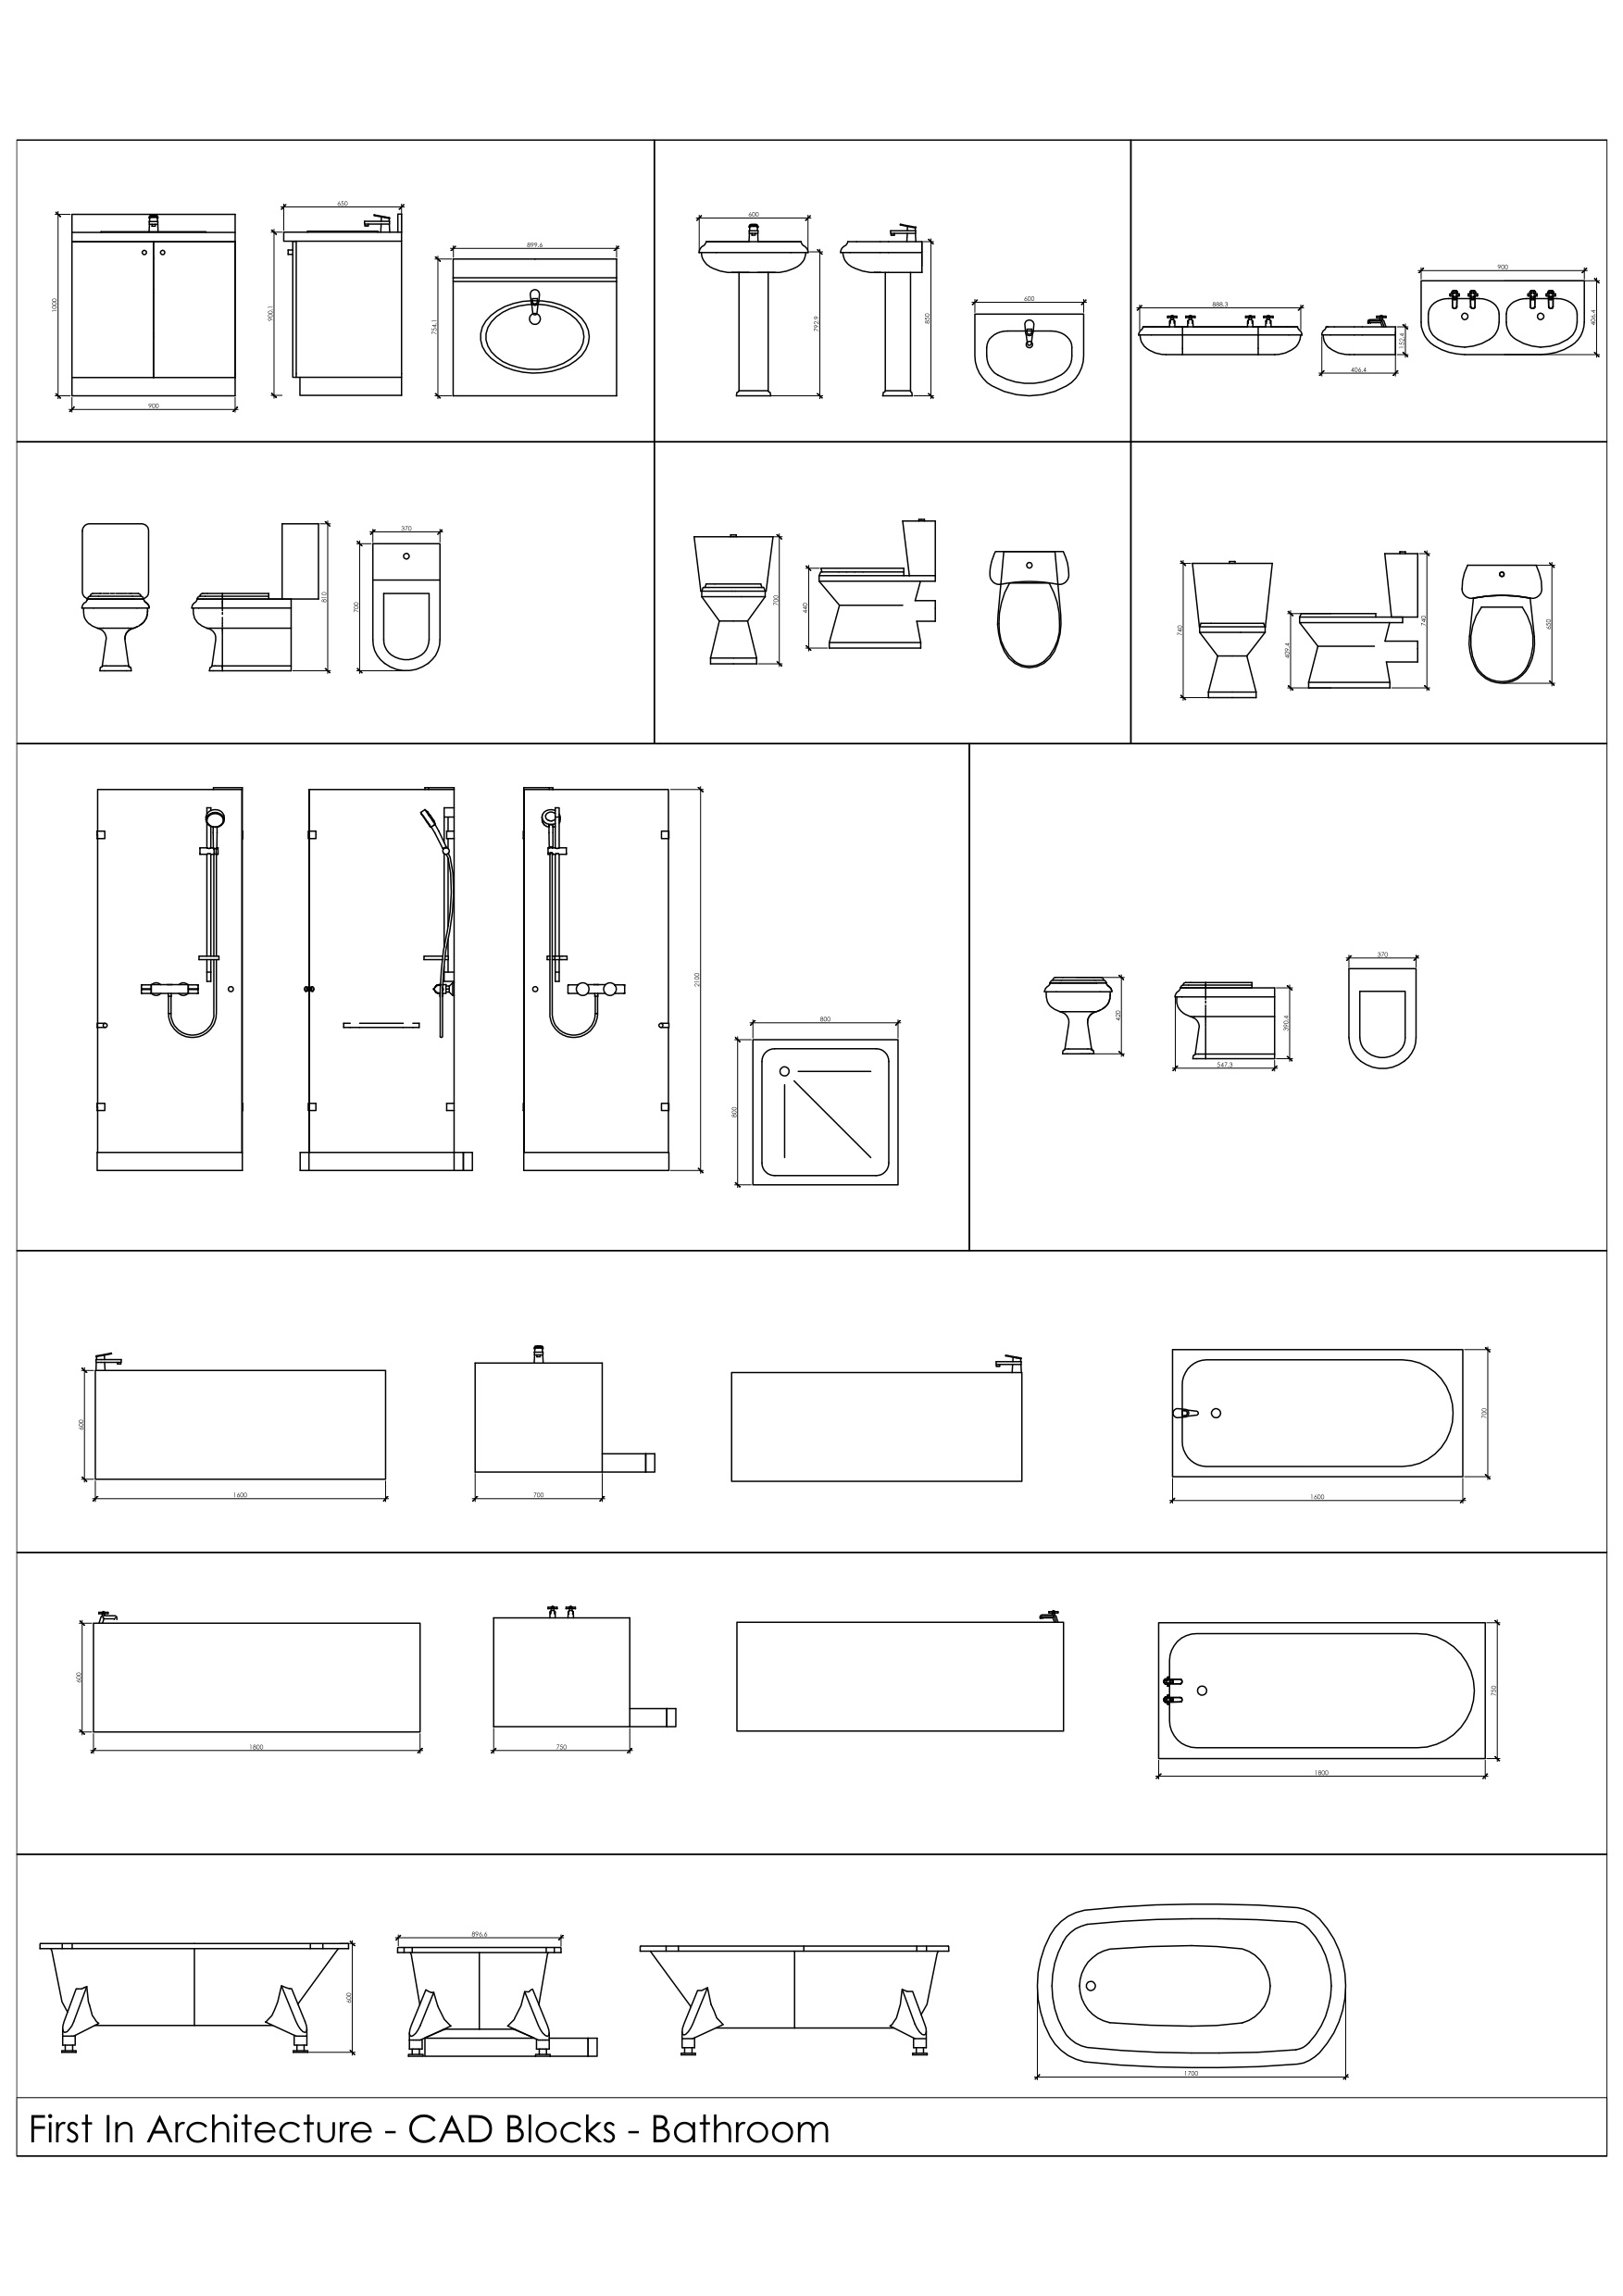 Bathroom Stalls Cad free cad blocks - bathroom | first in architecture